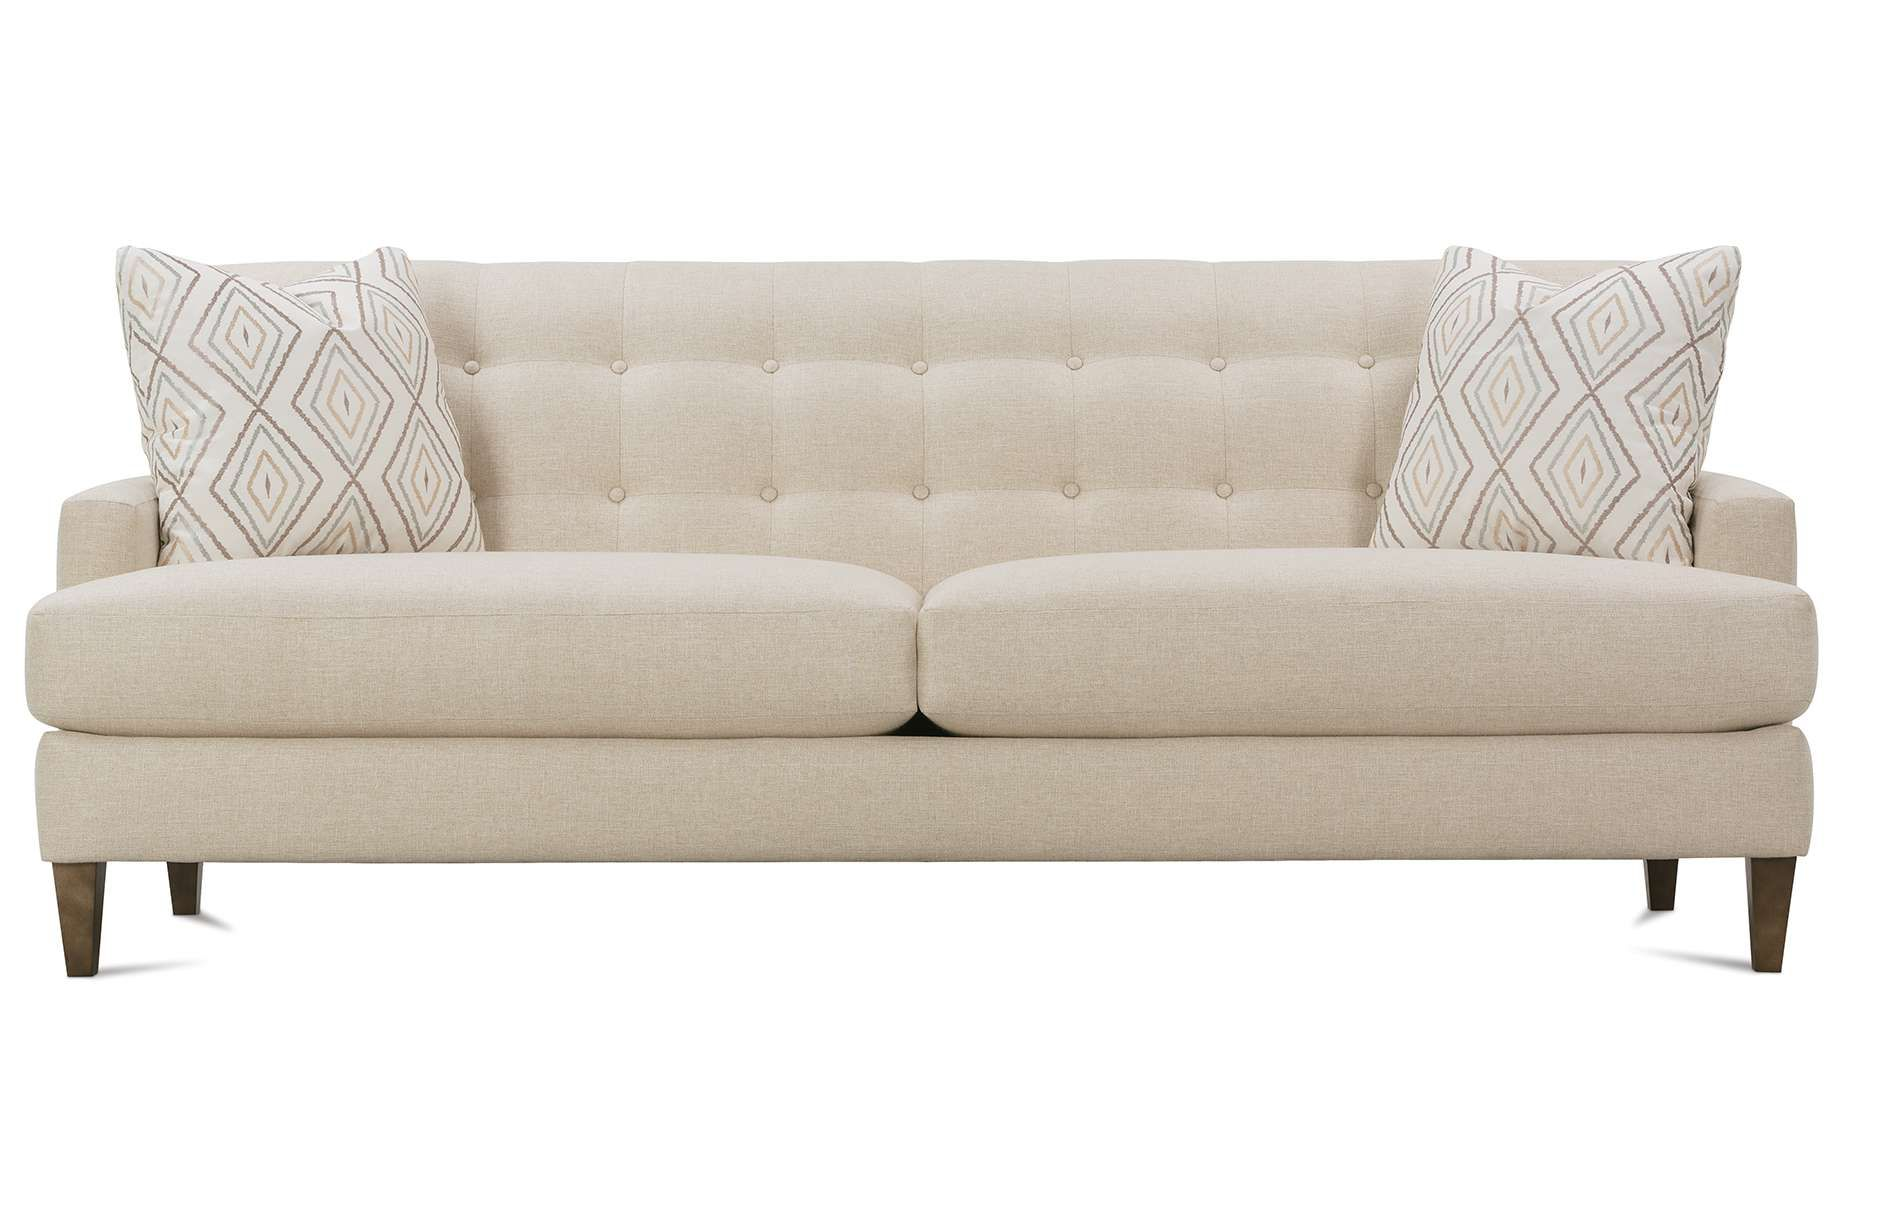 The Mitchell Sofa Combines Elegance With Modern Style To Create An  Exquisite Design From Rowe Furniture. Customize The Body And Pillows Here.